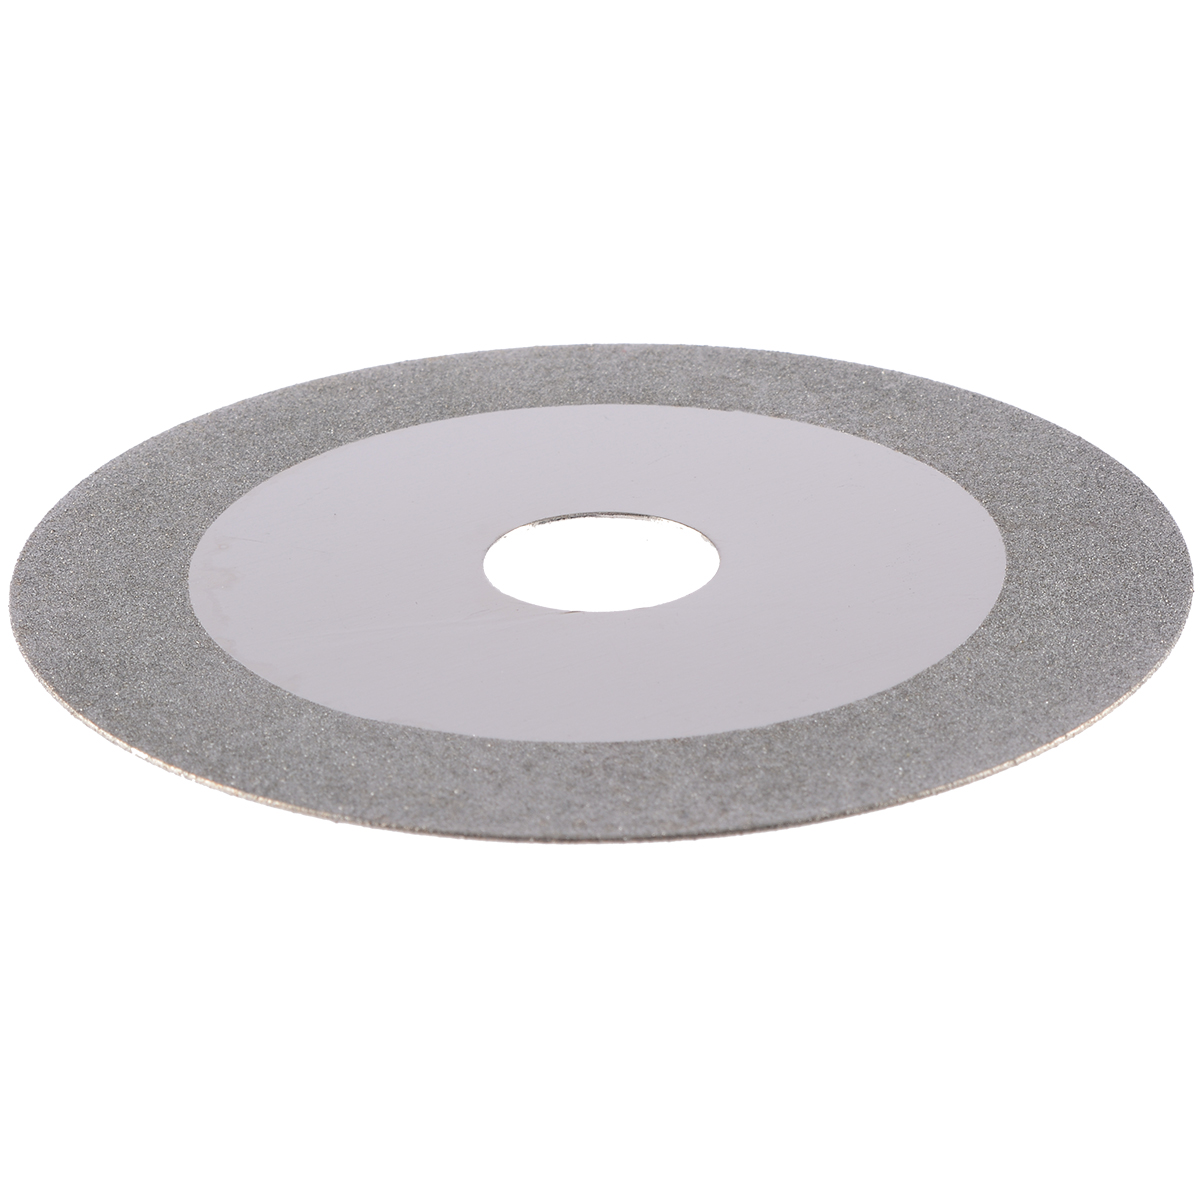 4inch Diamond Grinding Wheel Grinding Disc For Angle Grinder Disc Mini Grinder Saw Blade 100*20mm